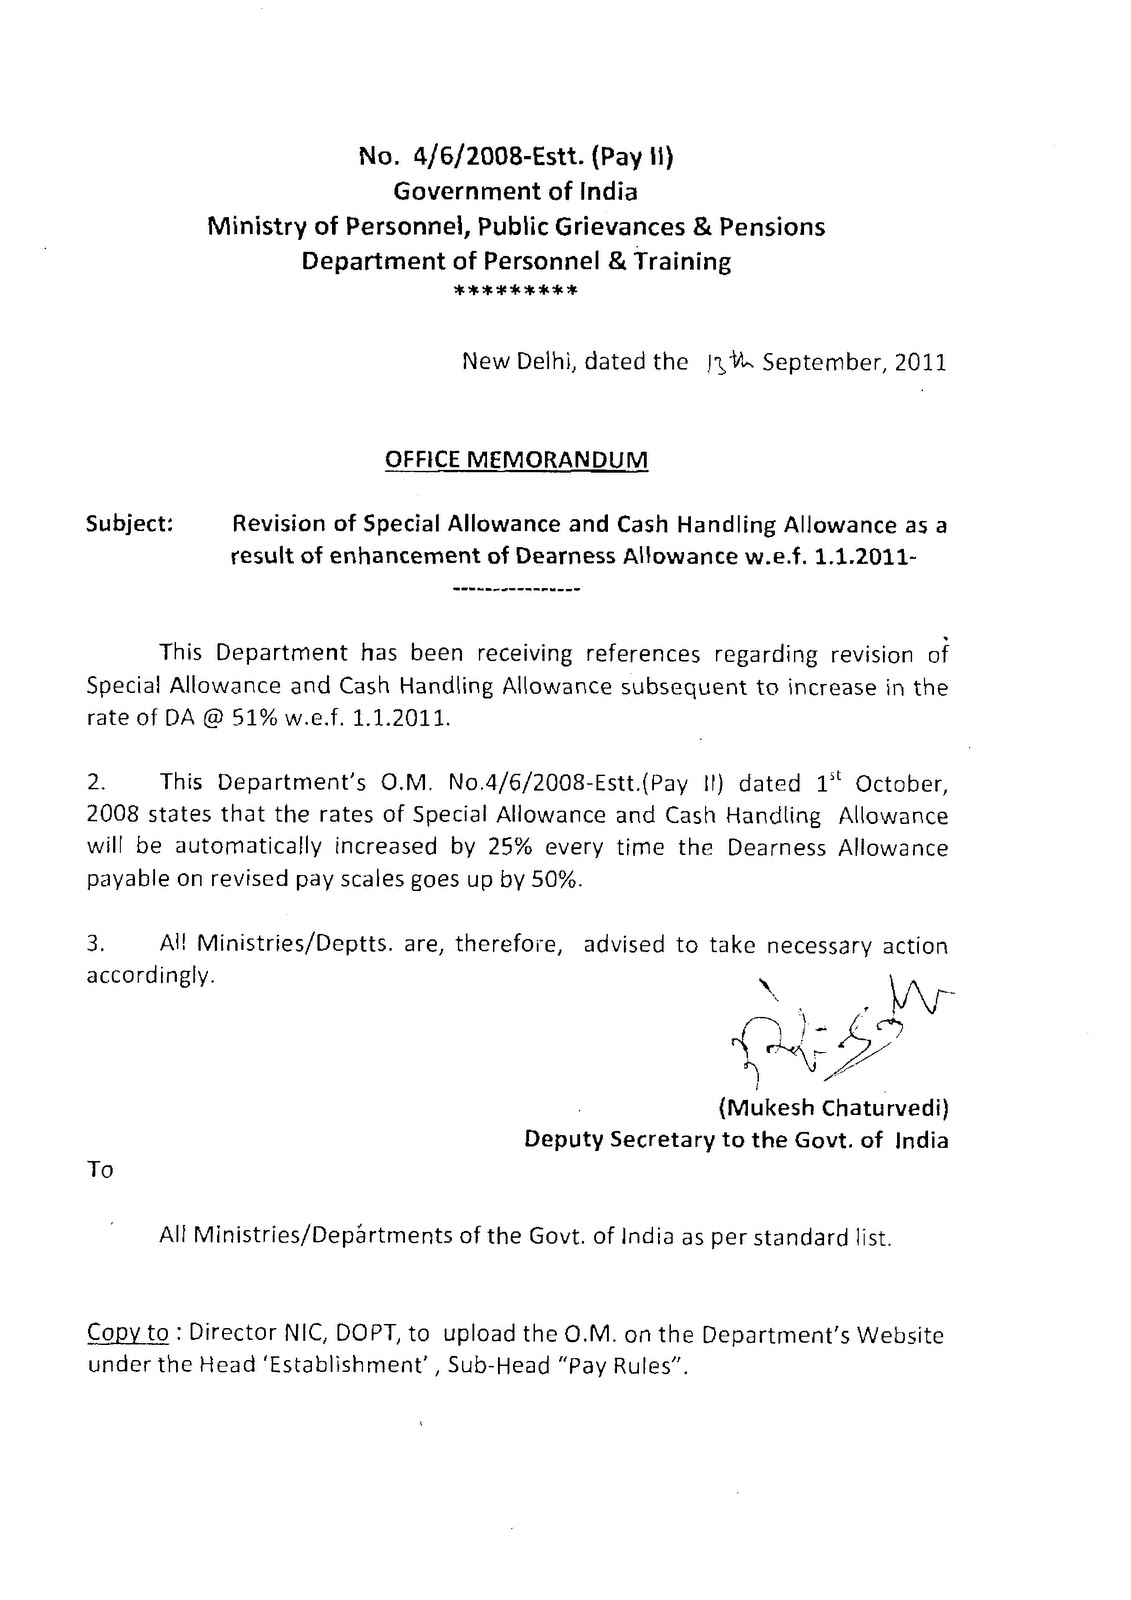 satishk everything under the sky revision of special allowance and cash handling allowance as a result of enhancement of da w e f 1 1 2011